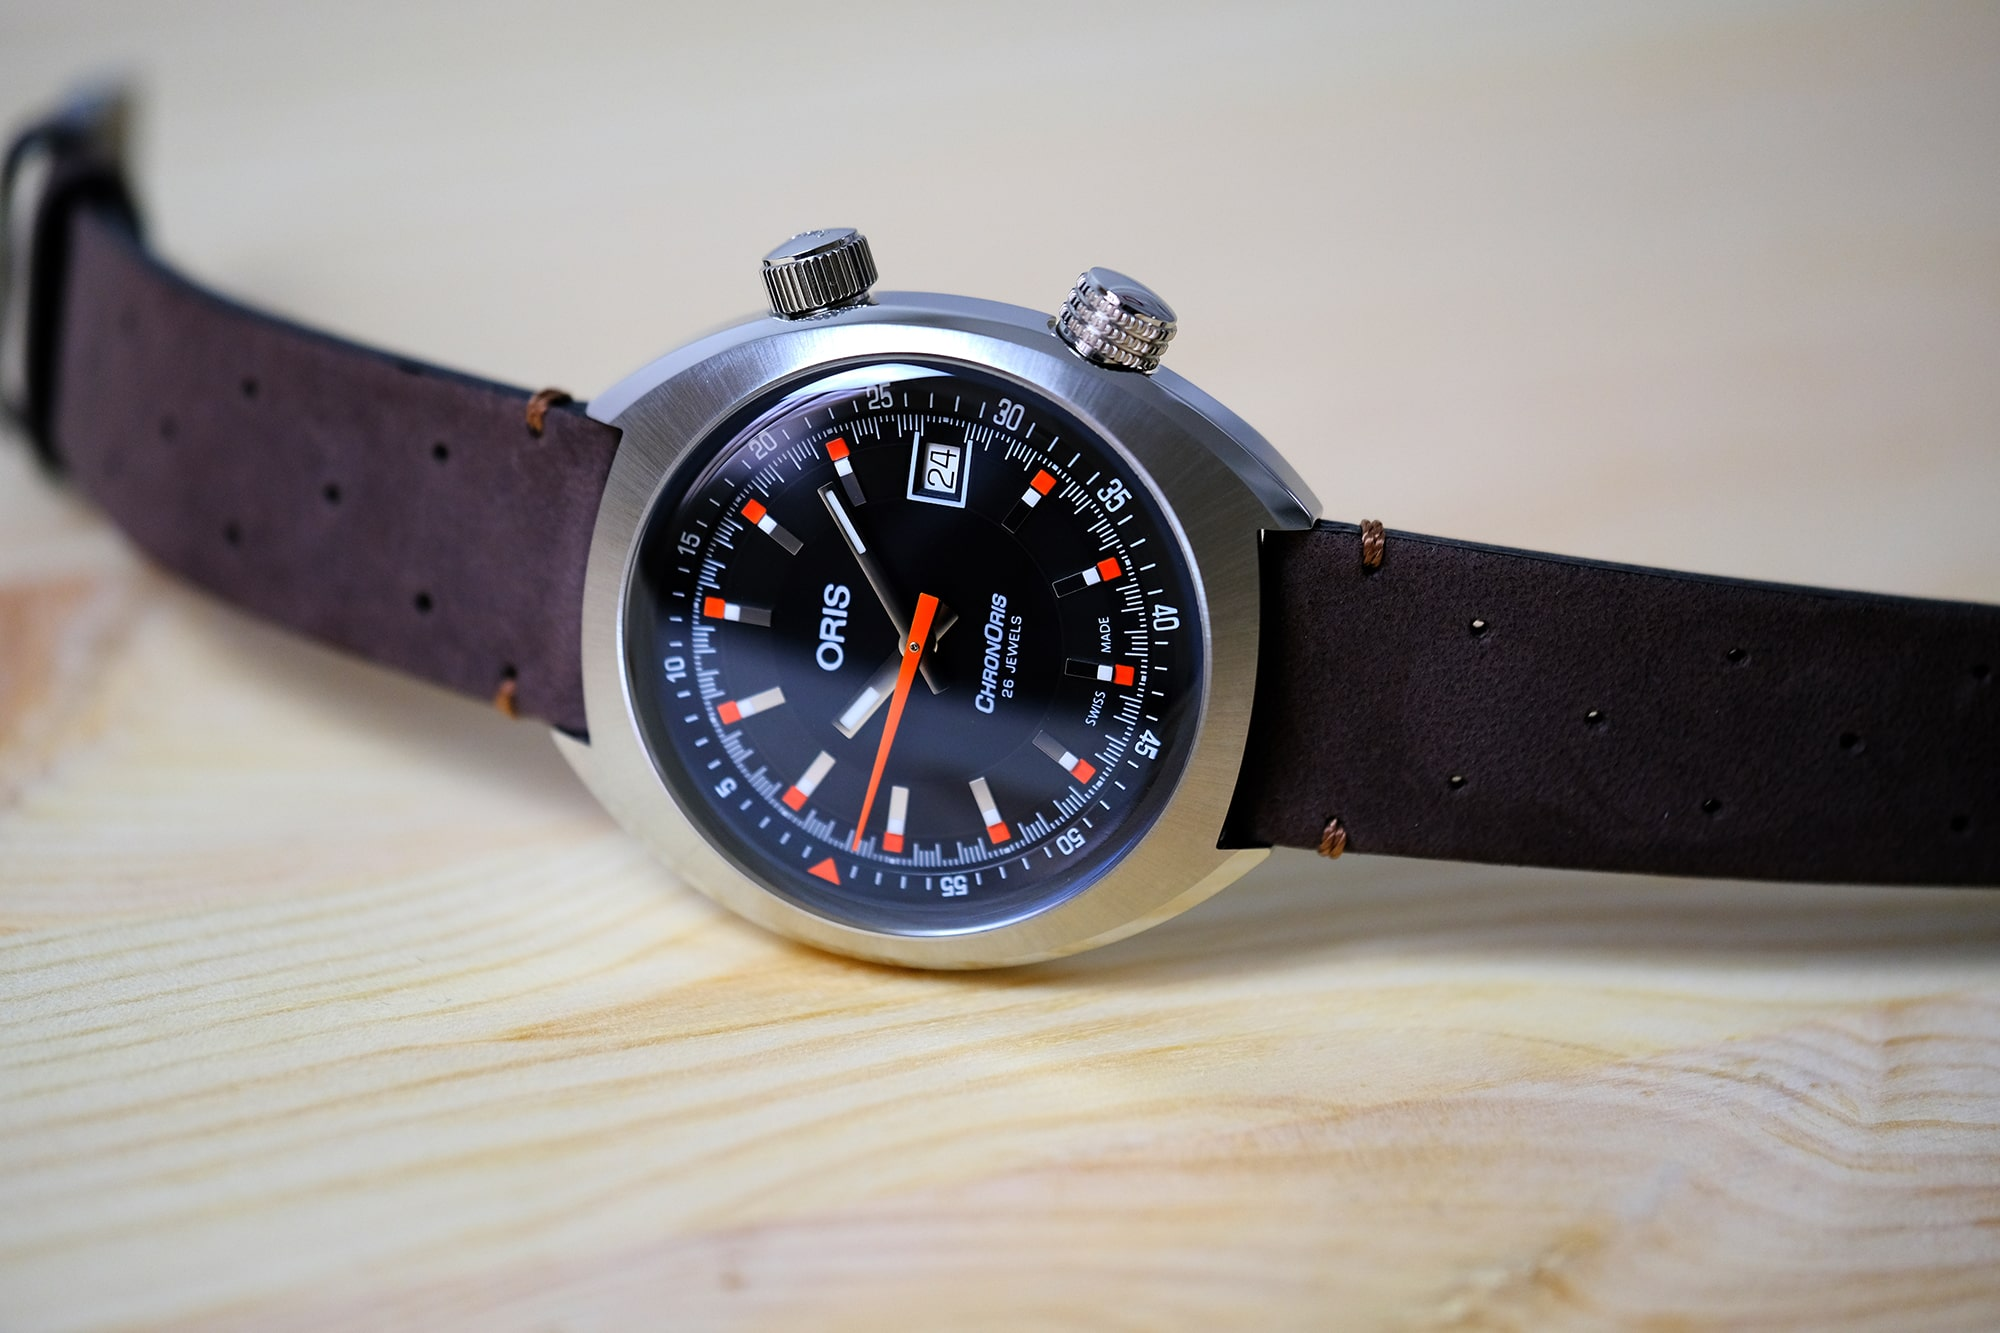 Oris-733-movement.jpg